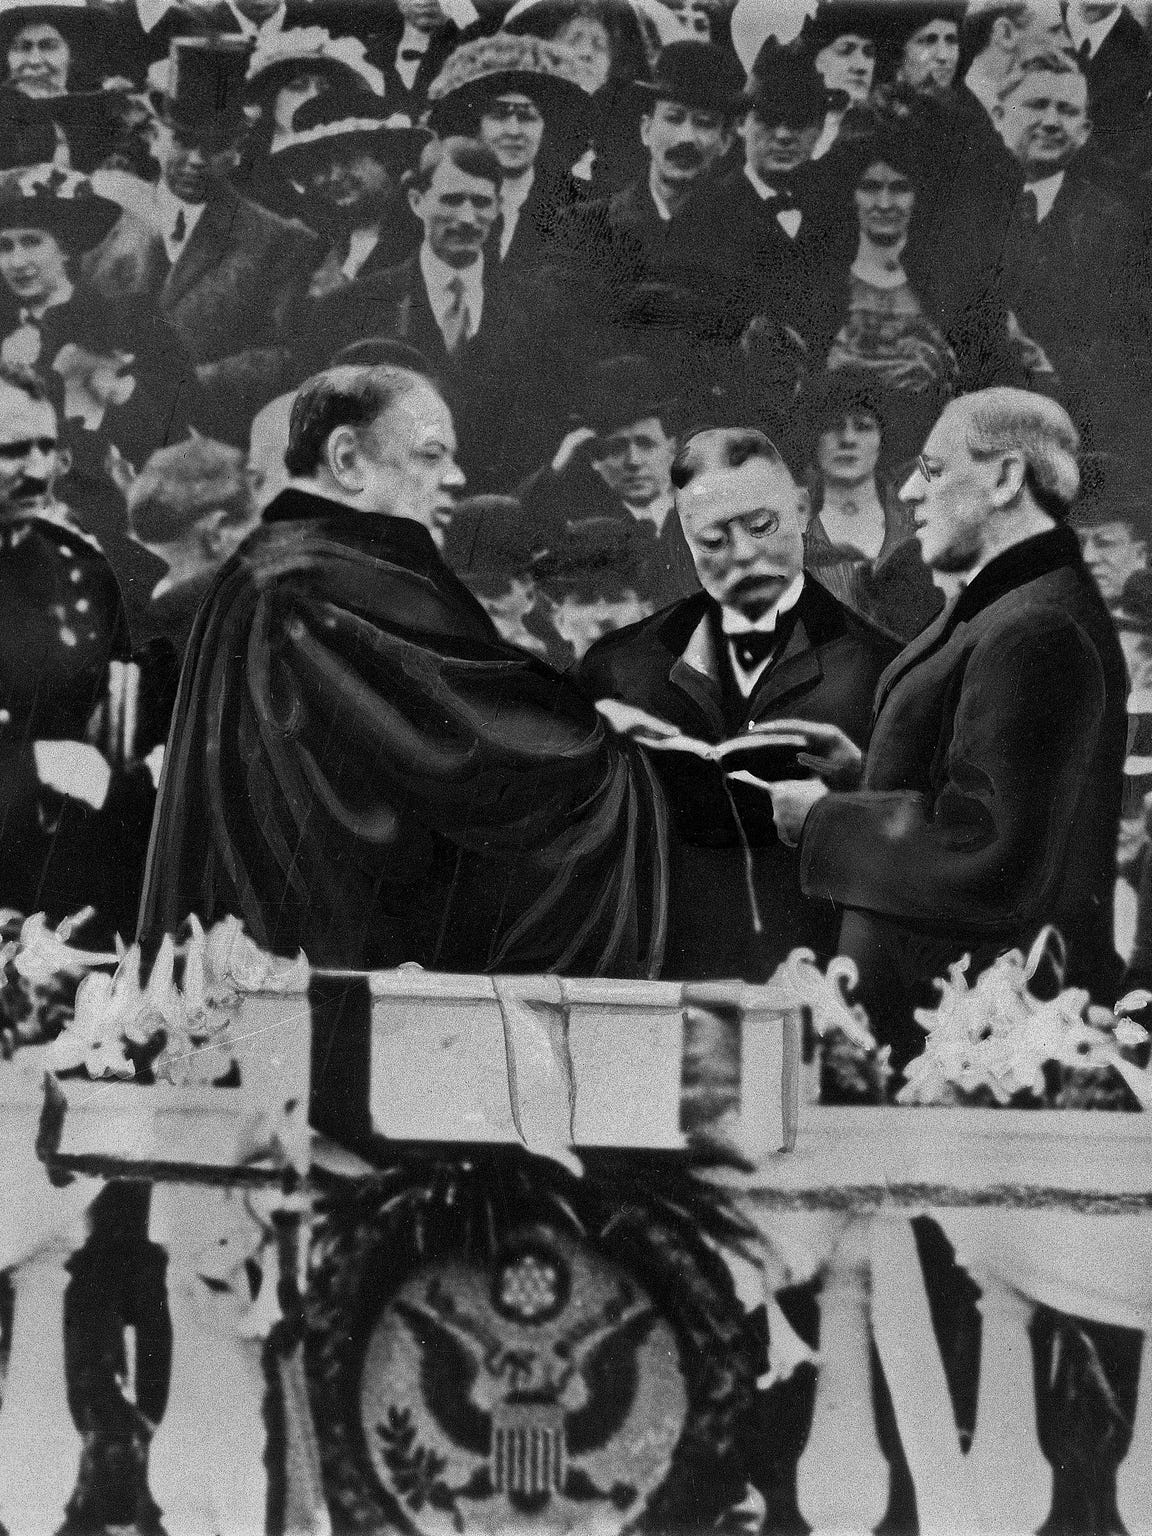 Woodrow Wilson takes the oath for his first presidency in Washington on March 4, 1913.